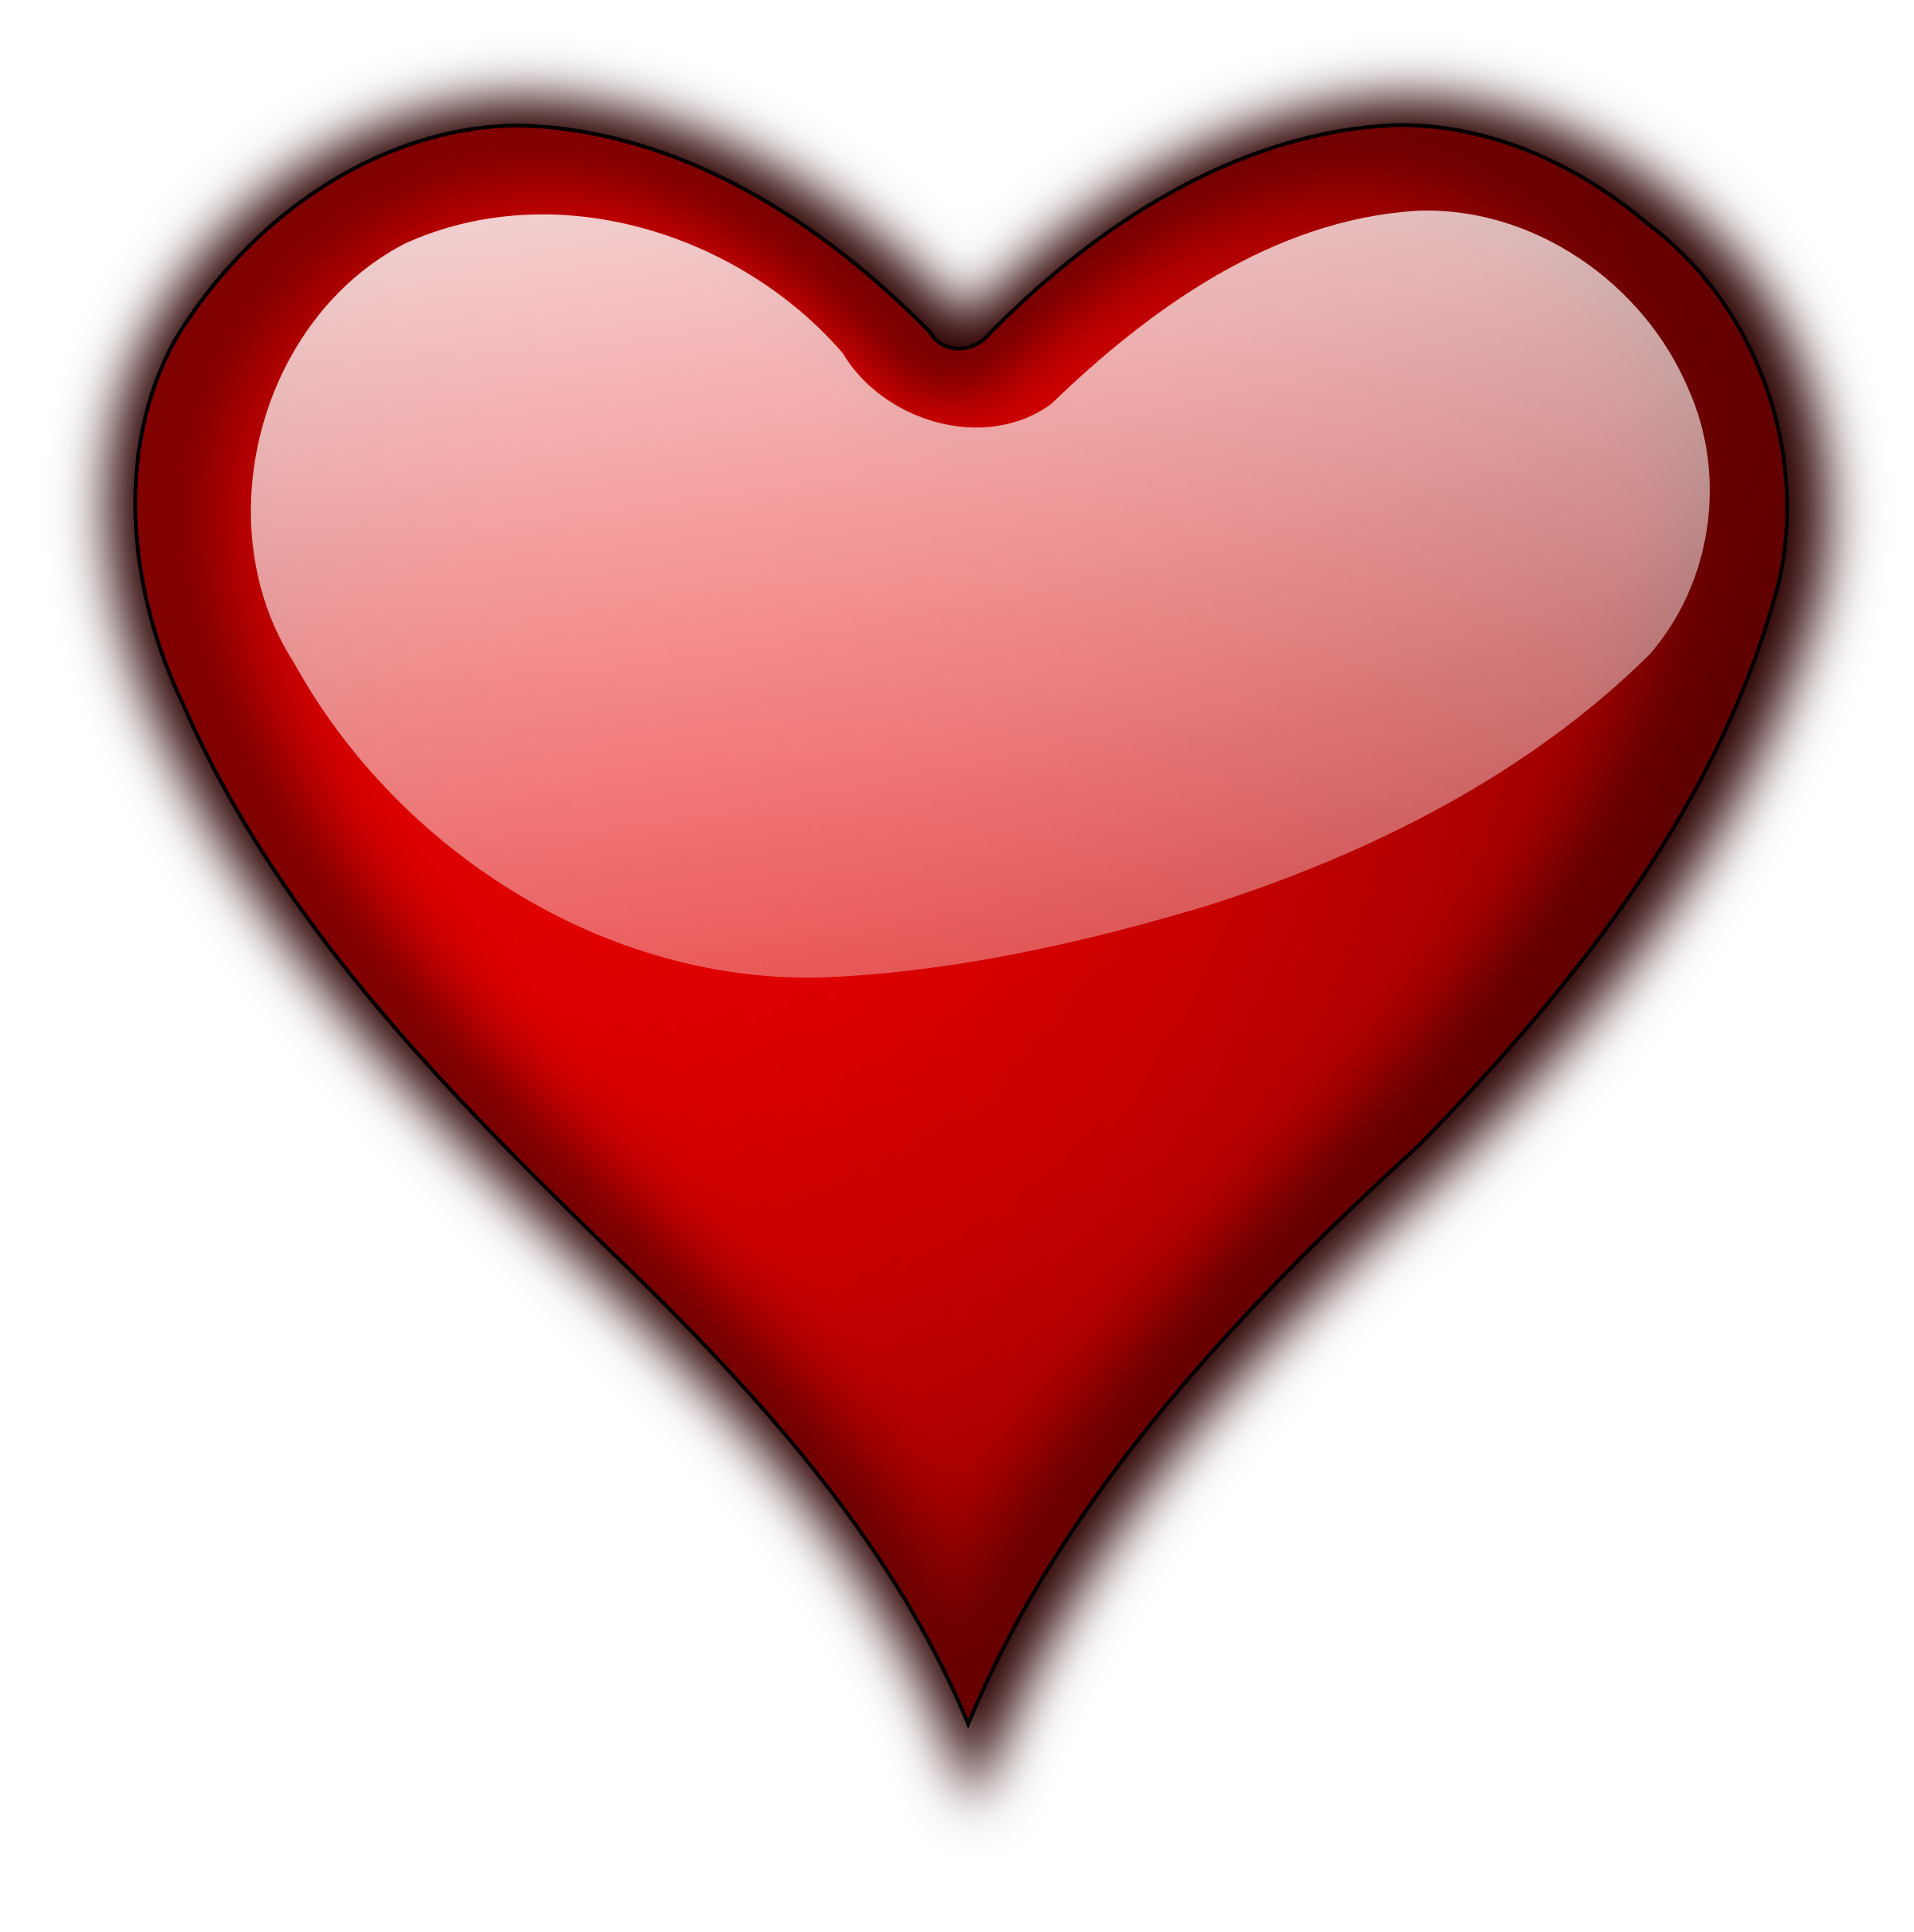 Pure heart clipart clip art free library Clipart - Heart Gloss 5 clip art free library